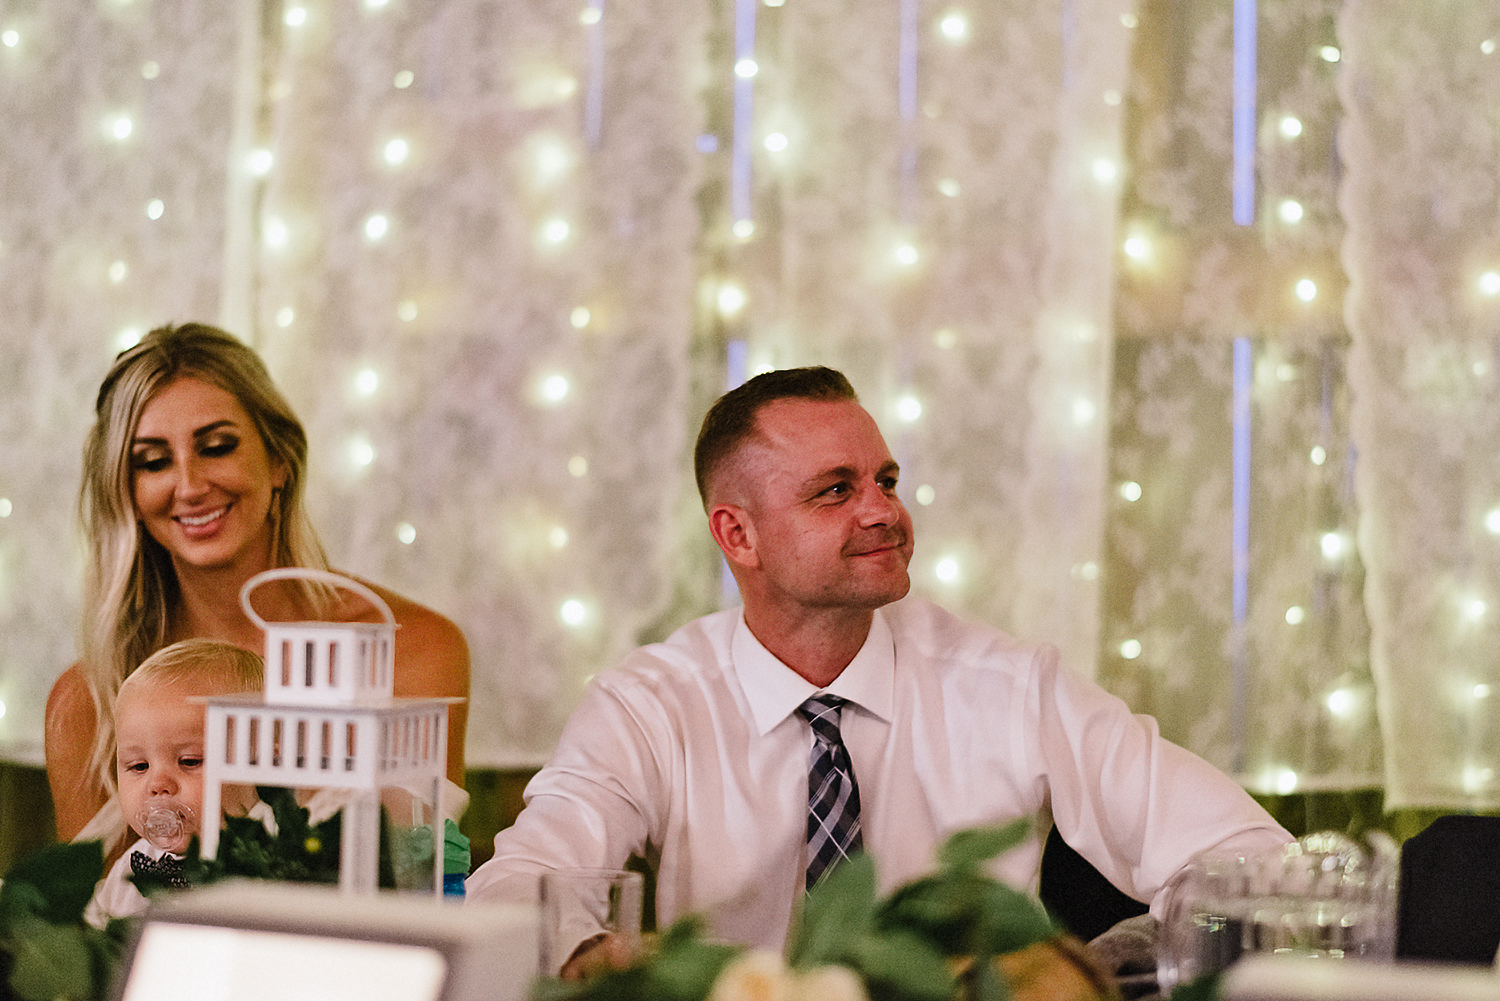 Best-Wedding-Photographers-Toronto-with-Documentary-and-photojournalistic-style-3b-Photography-Intimate-Wedding-at-Dowswell-Barn-Wedding-Photography-emotional-groom-speeches.jpg